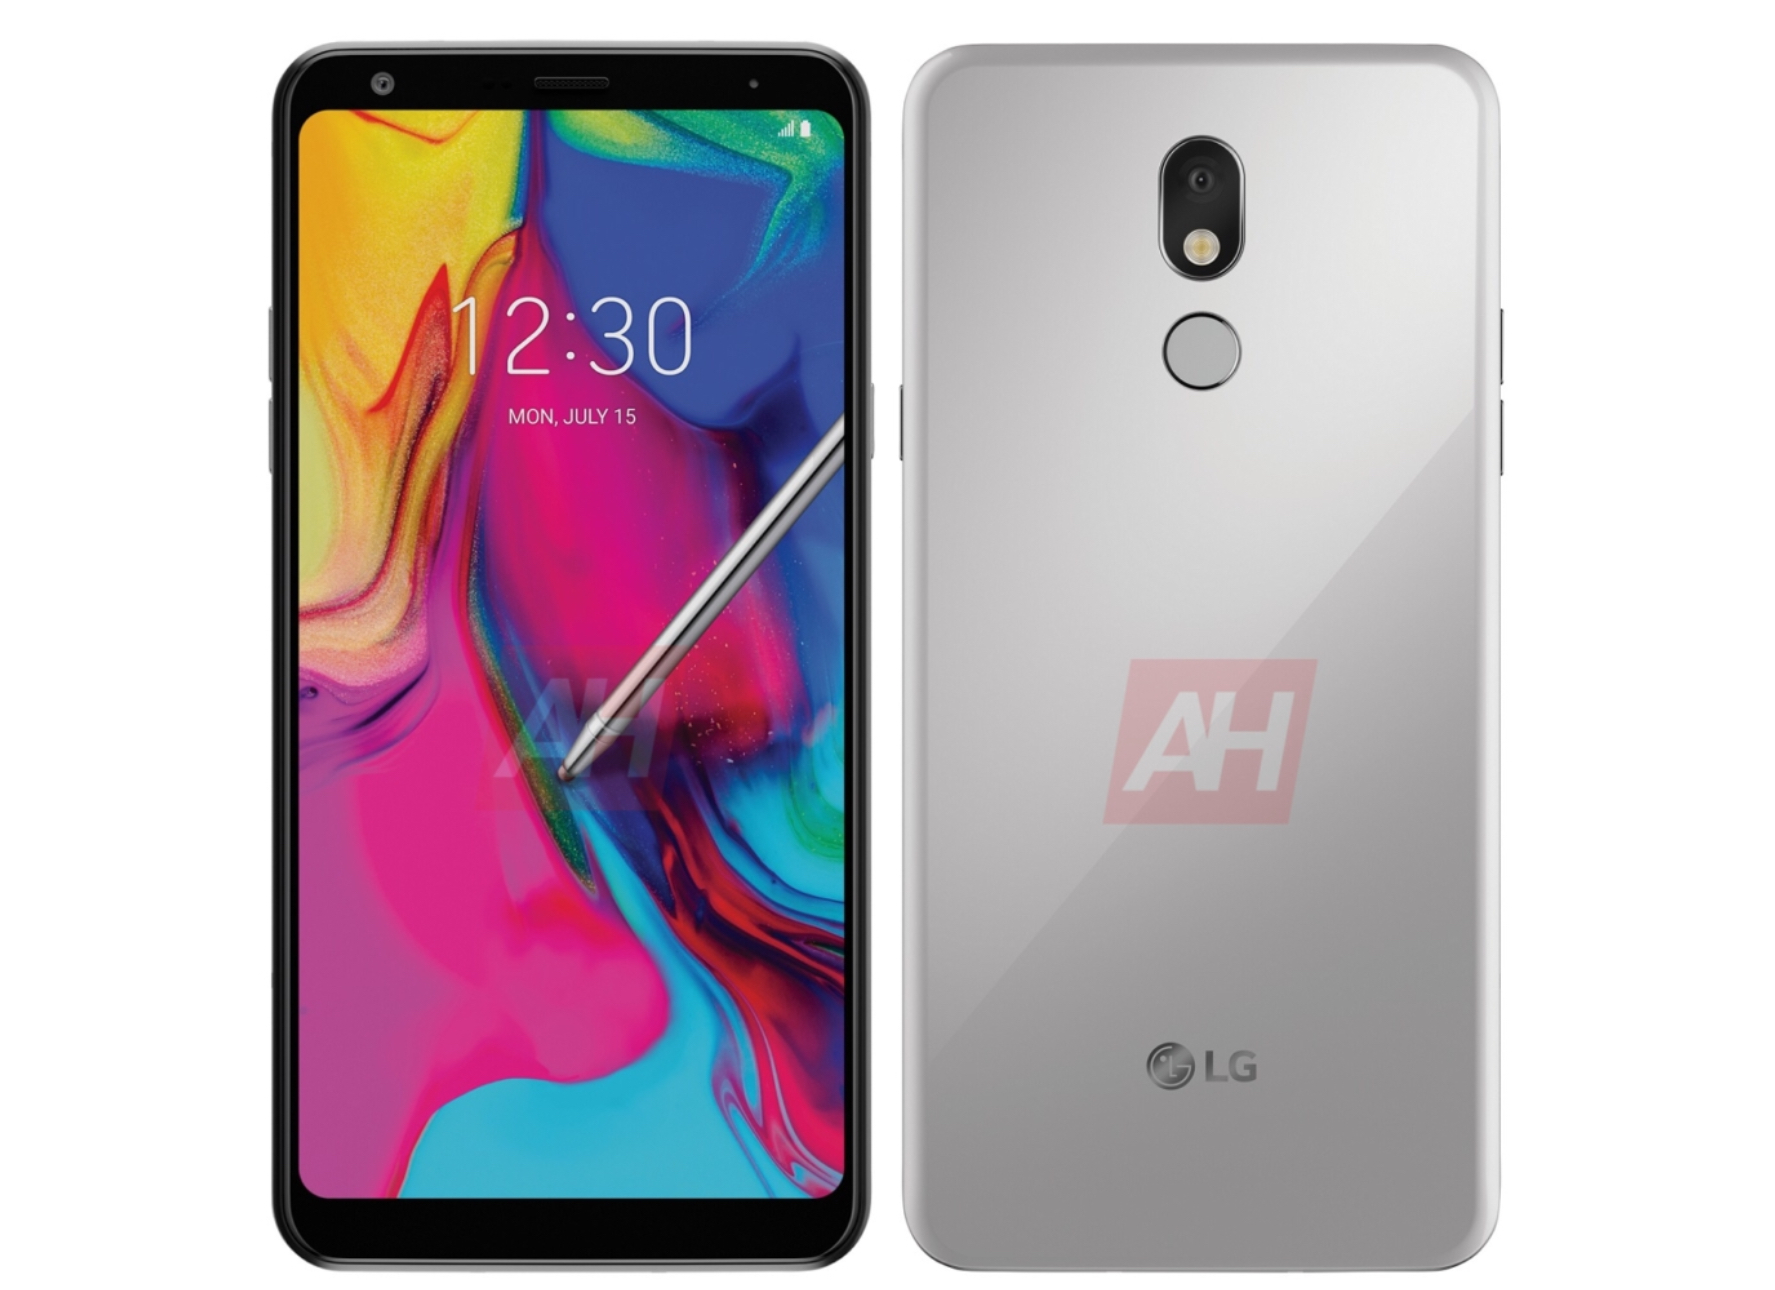 LG Stylo 5 render shows new color, no new details ...